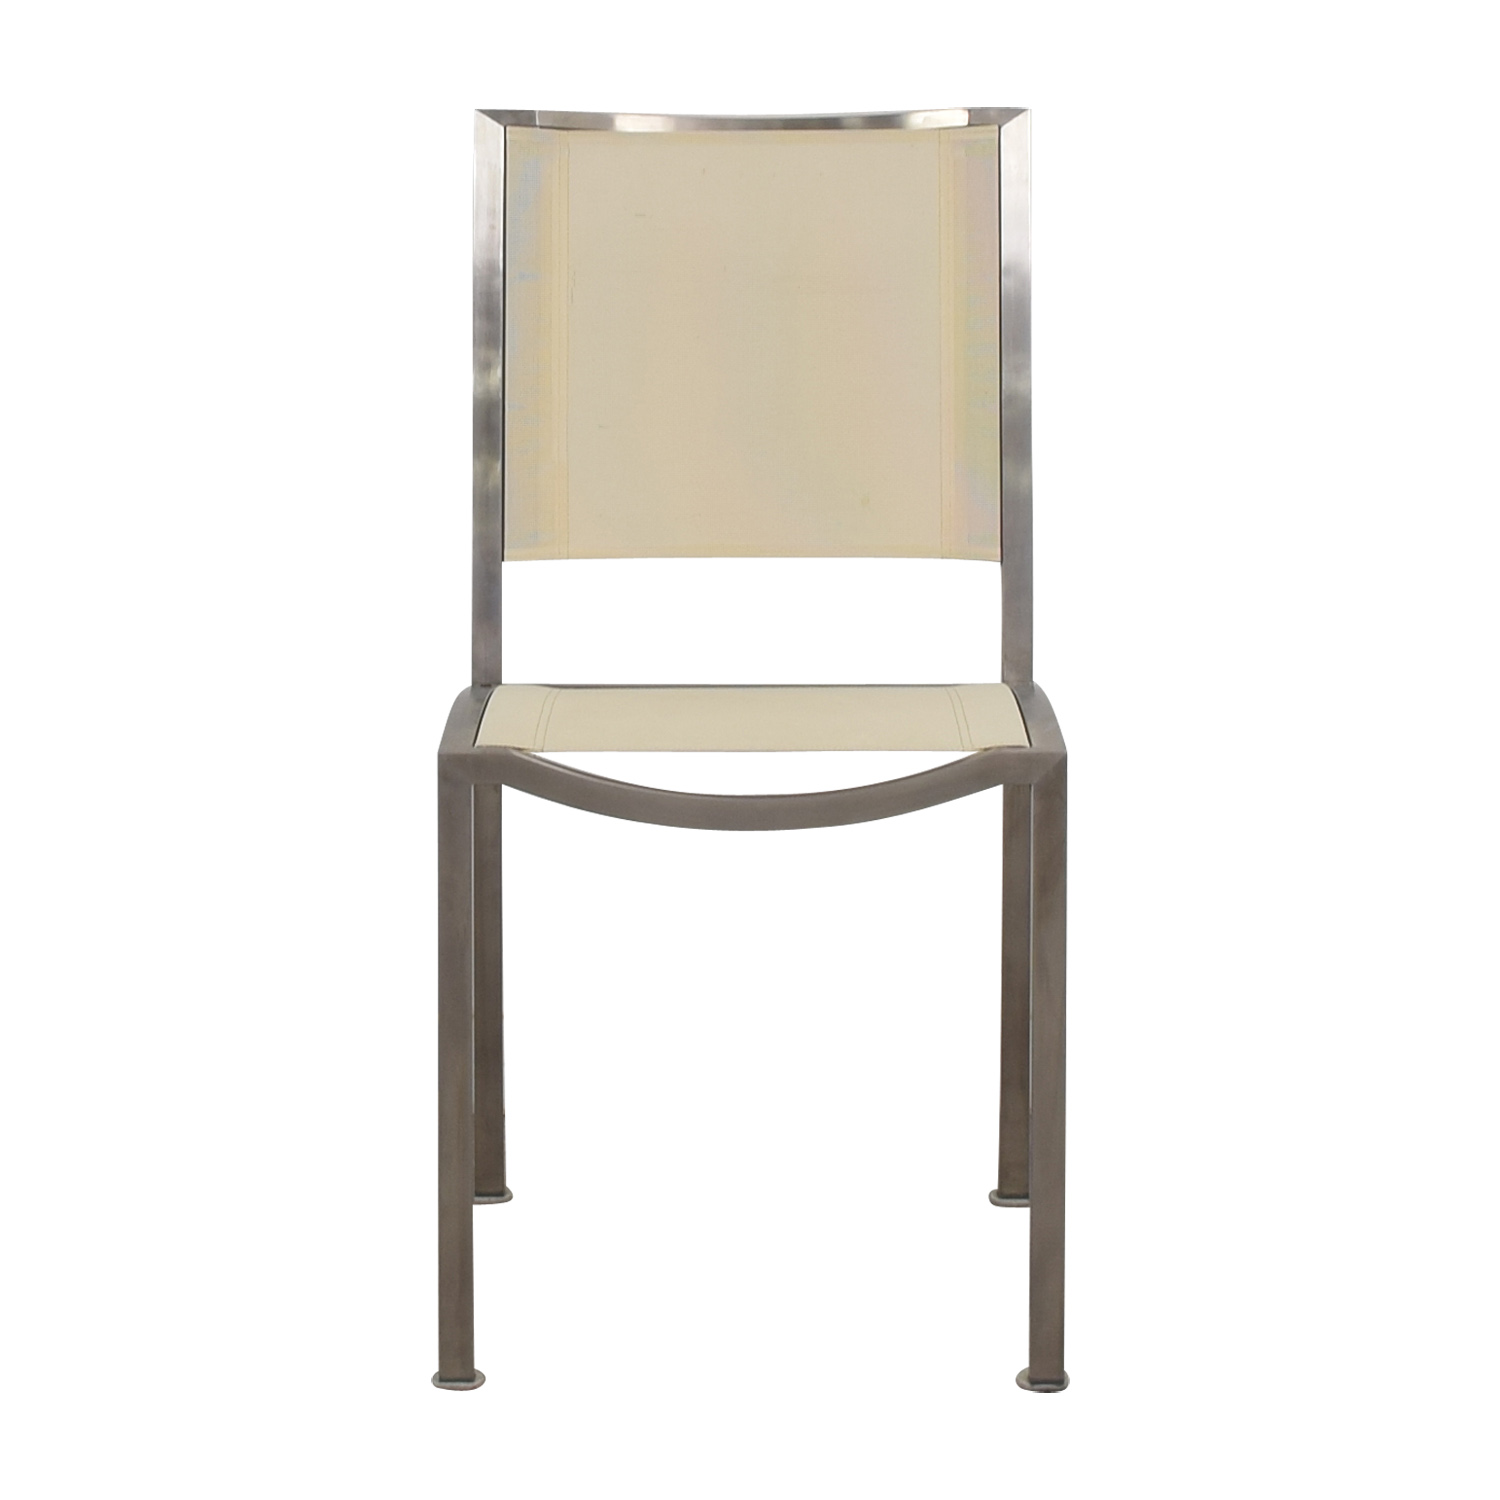 West Elm West Elm Metal Chair Dining Chairs